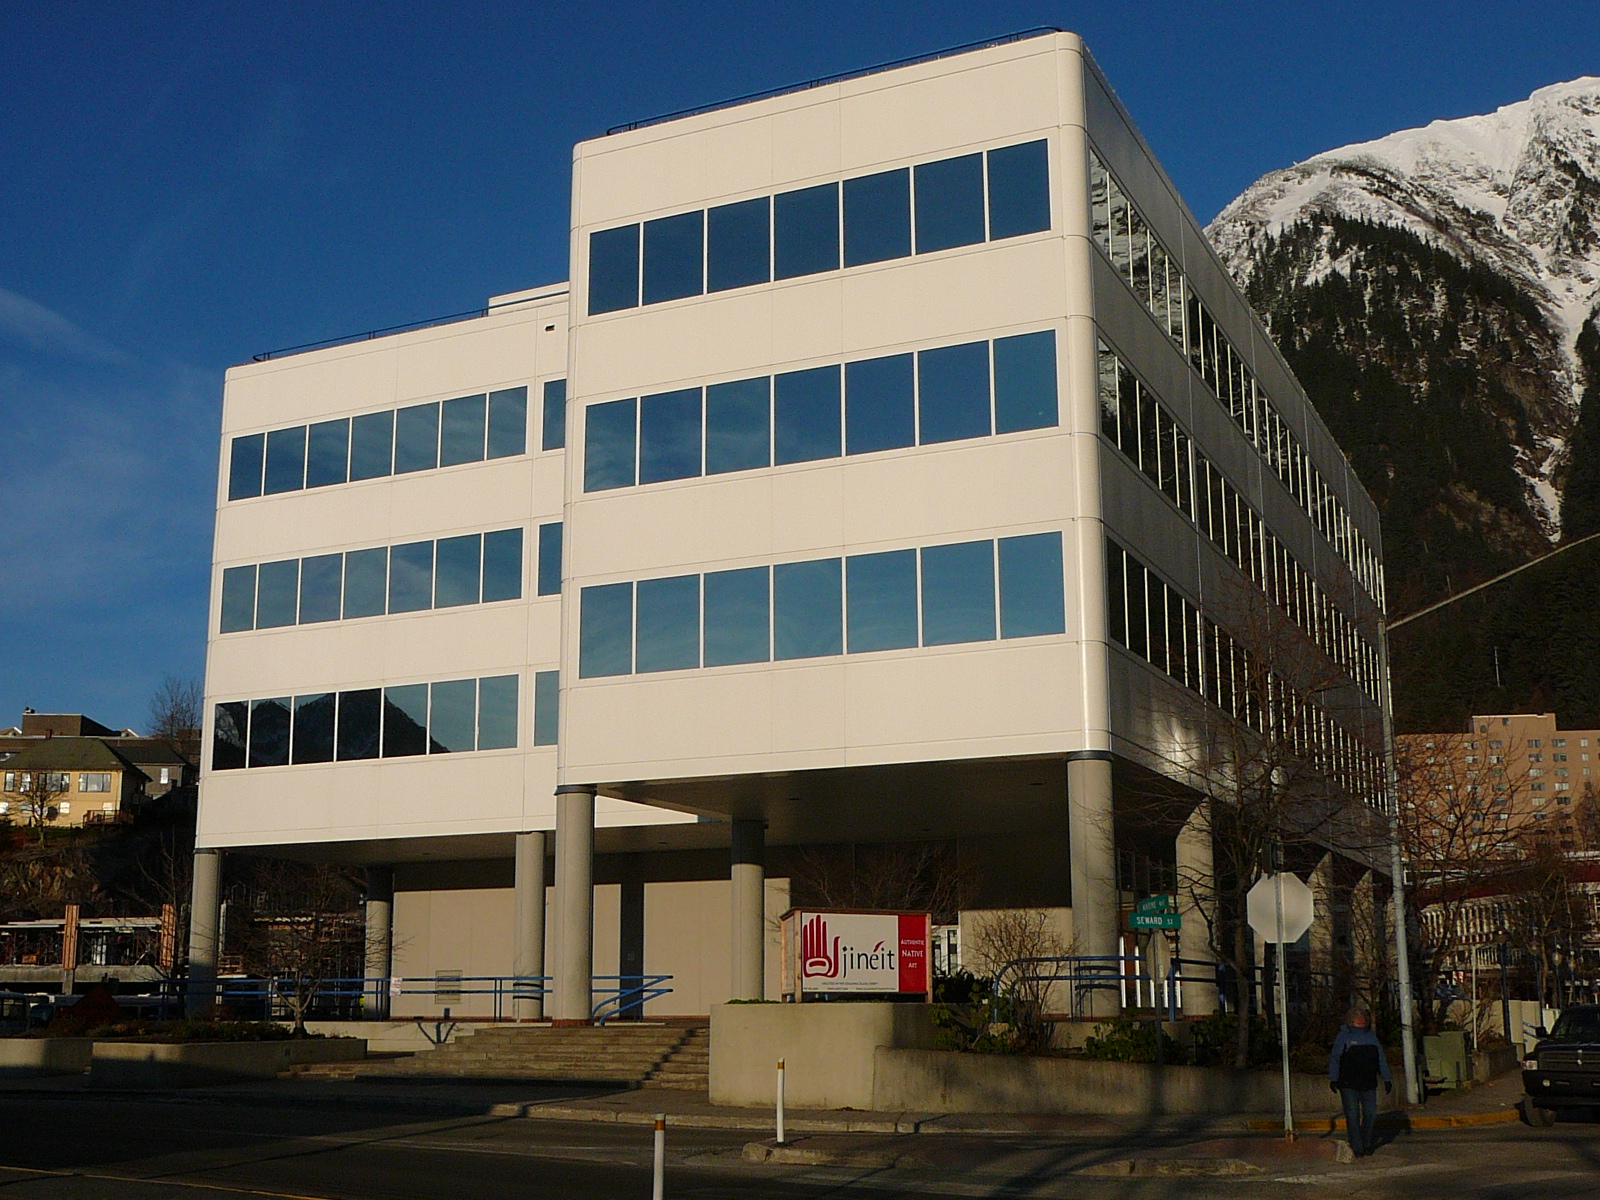 Sealaska Plaza, headquarters of the Southeast regional Native corporation, in Juneau. (Photo by Ed Schoenfeld/CoastAlaska News)